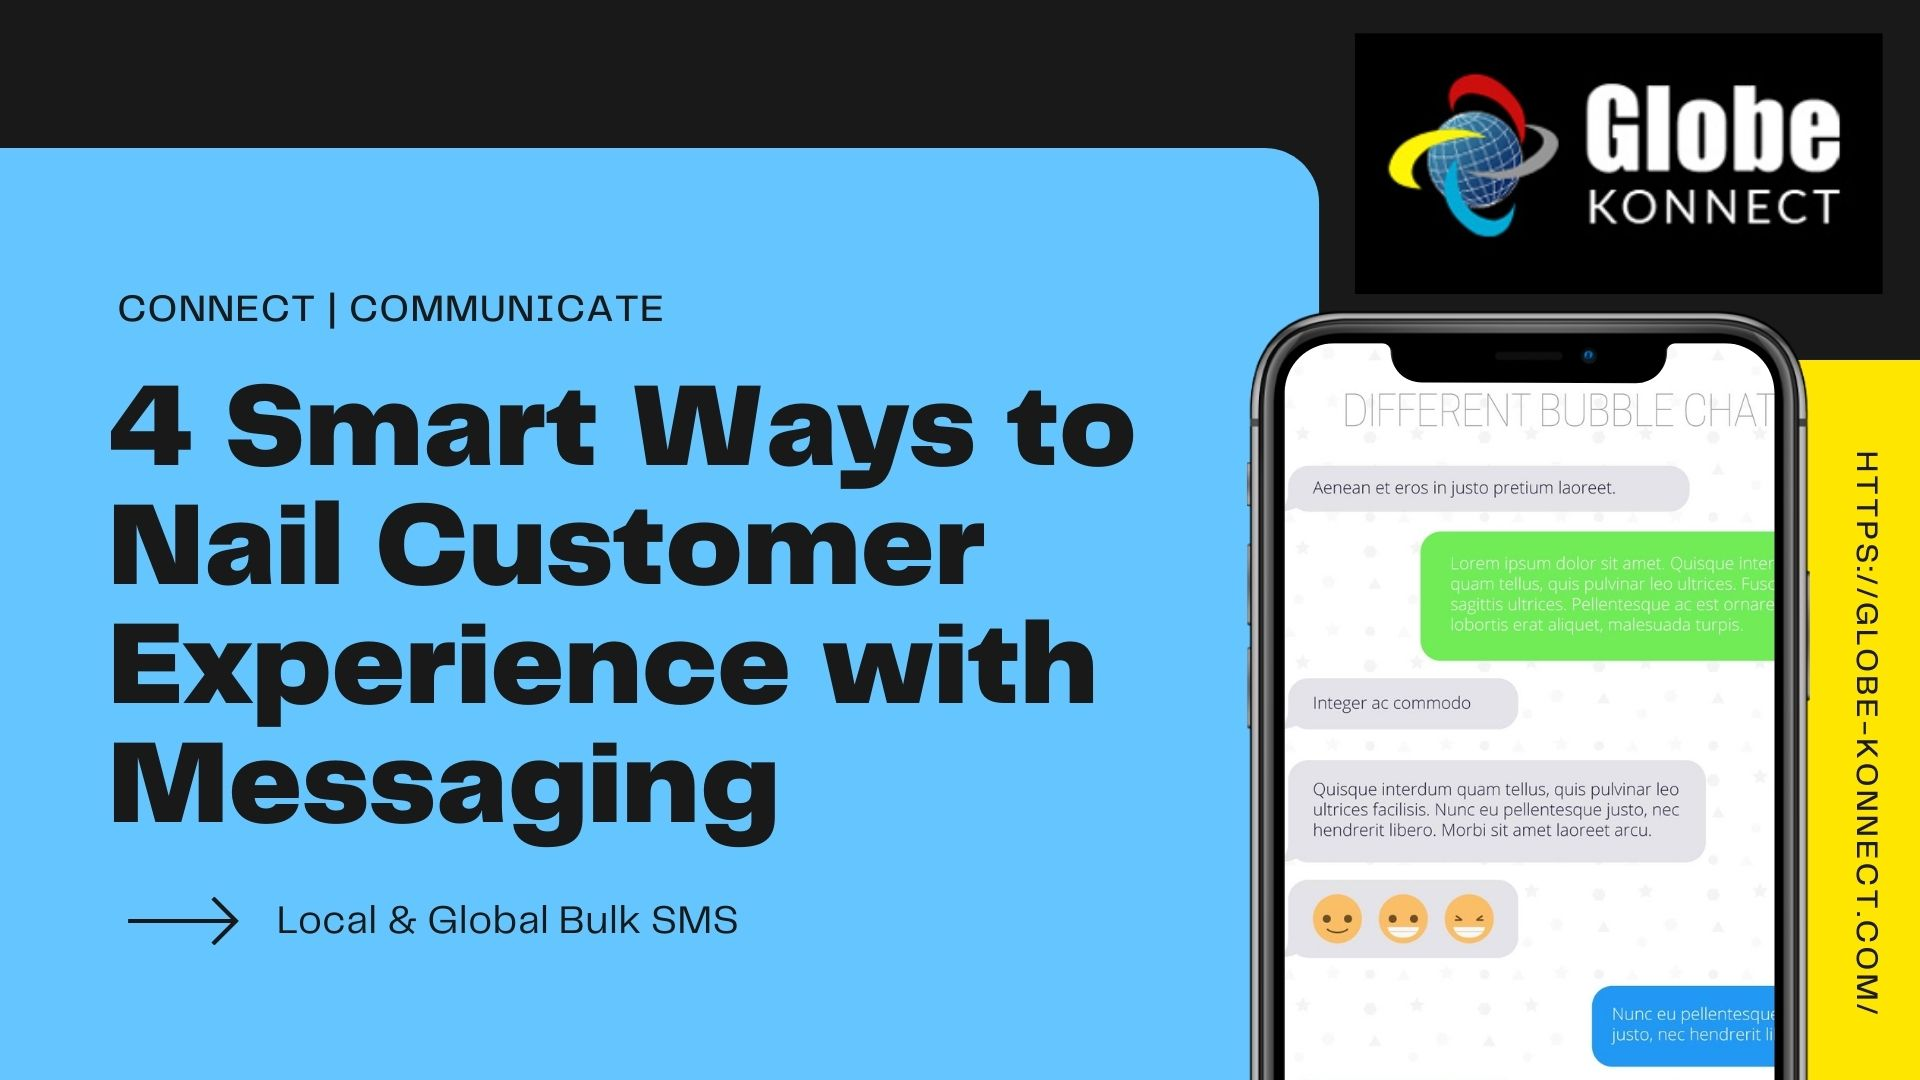 4 Smart Ways to Nail Customer Experience with Messaging